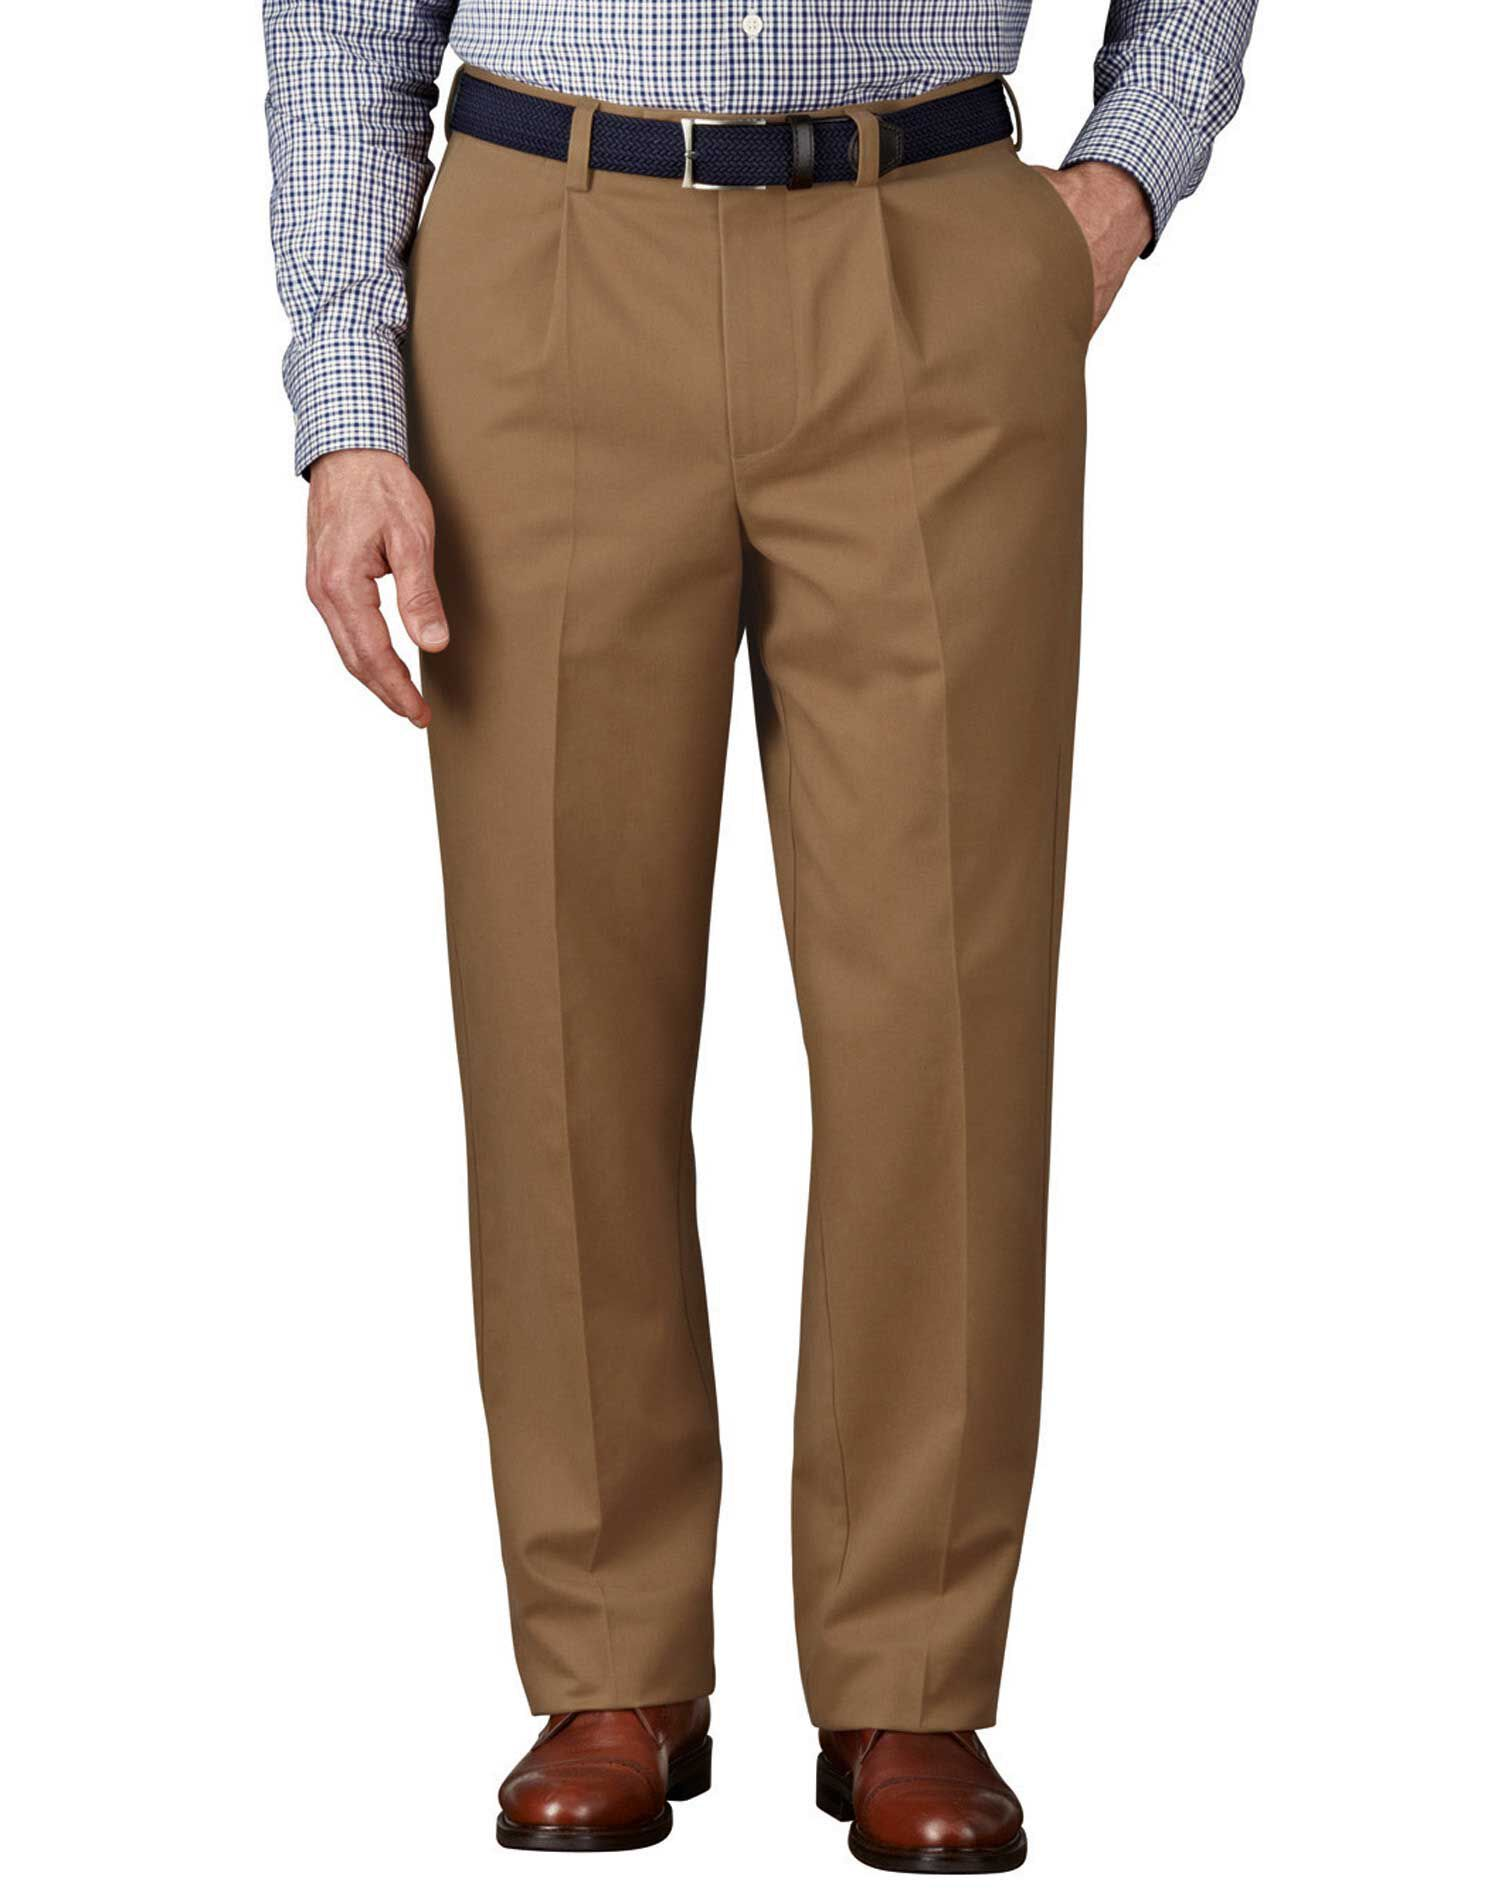 Camel Classic Fit Single Pleat Non-Iron Cotton Chino Trousers Size W42 L32 by Charles Tyrwhitt